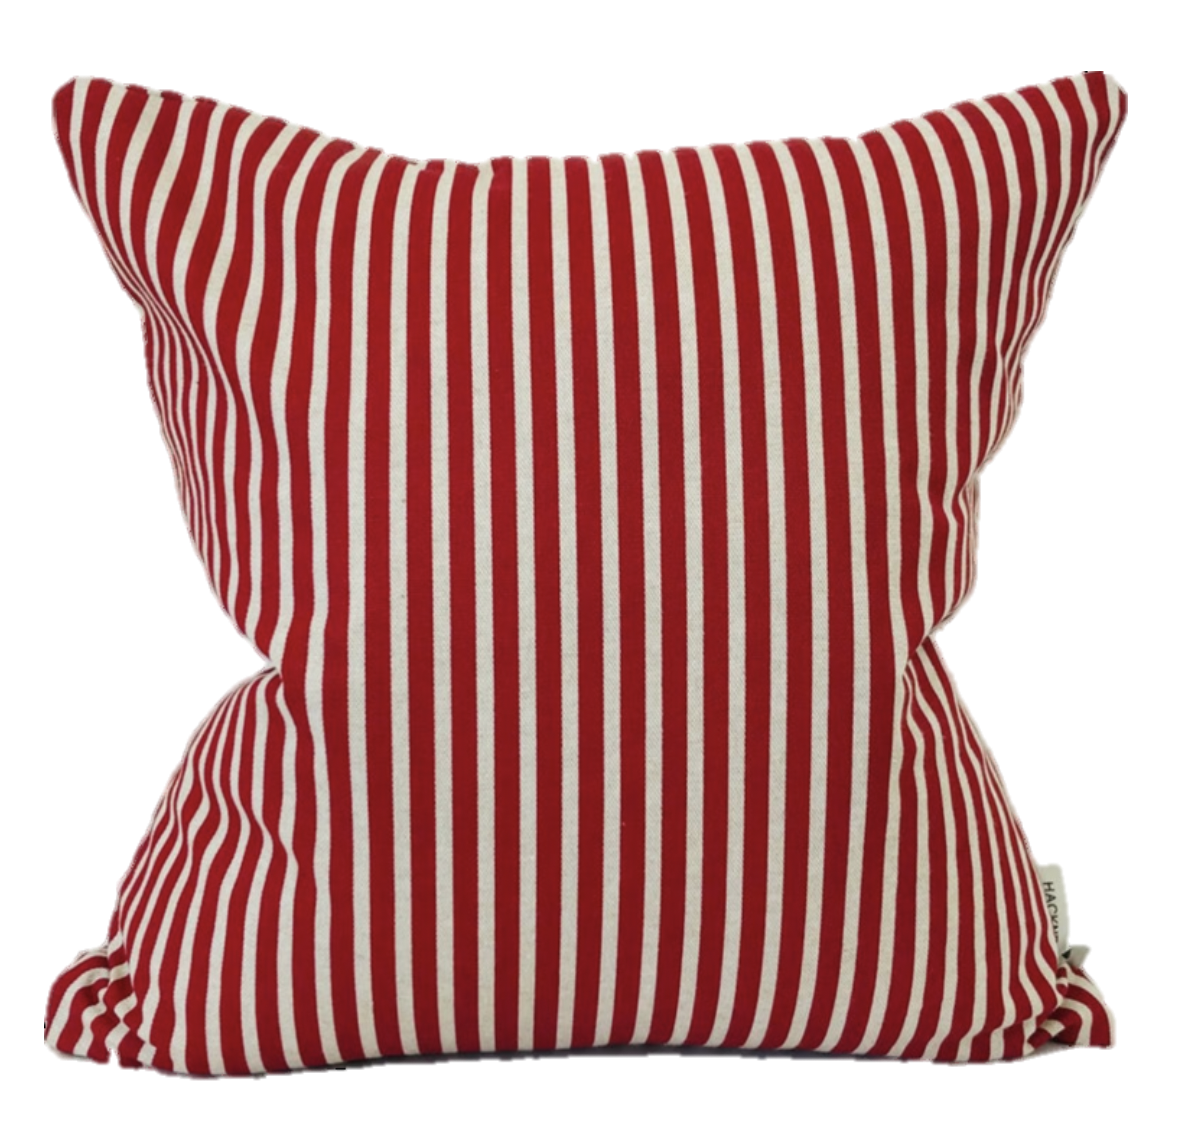 Red Striped Pillow Cover, Red Pillow, Red Decorative Pillow, Red Christmas Pillow, Striped Pillows, Red Through Pillows, Hackner Home, Designer Pillows, Christmas Decor